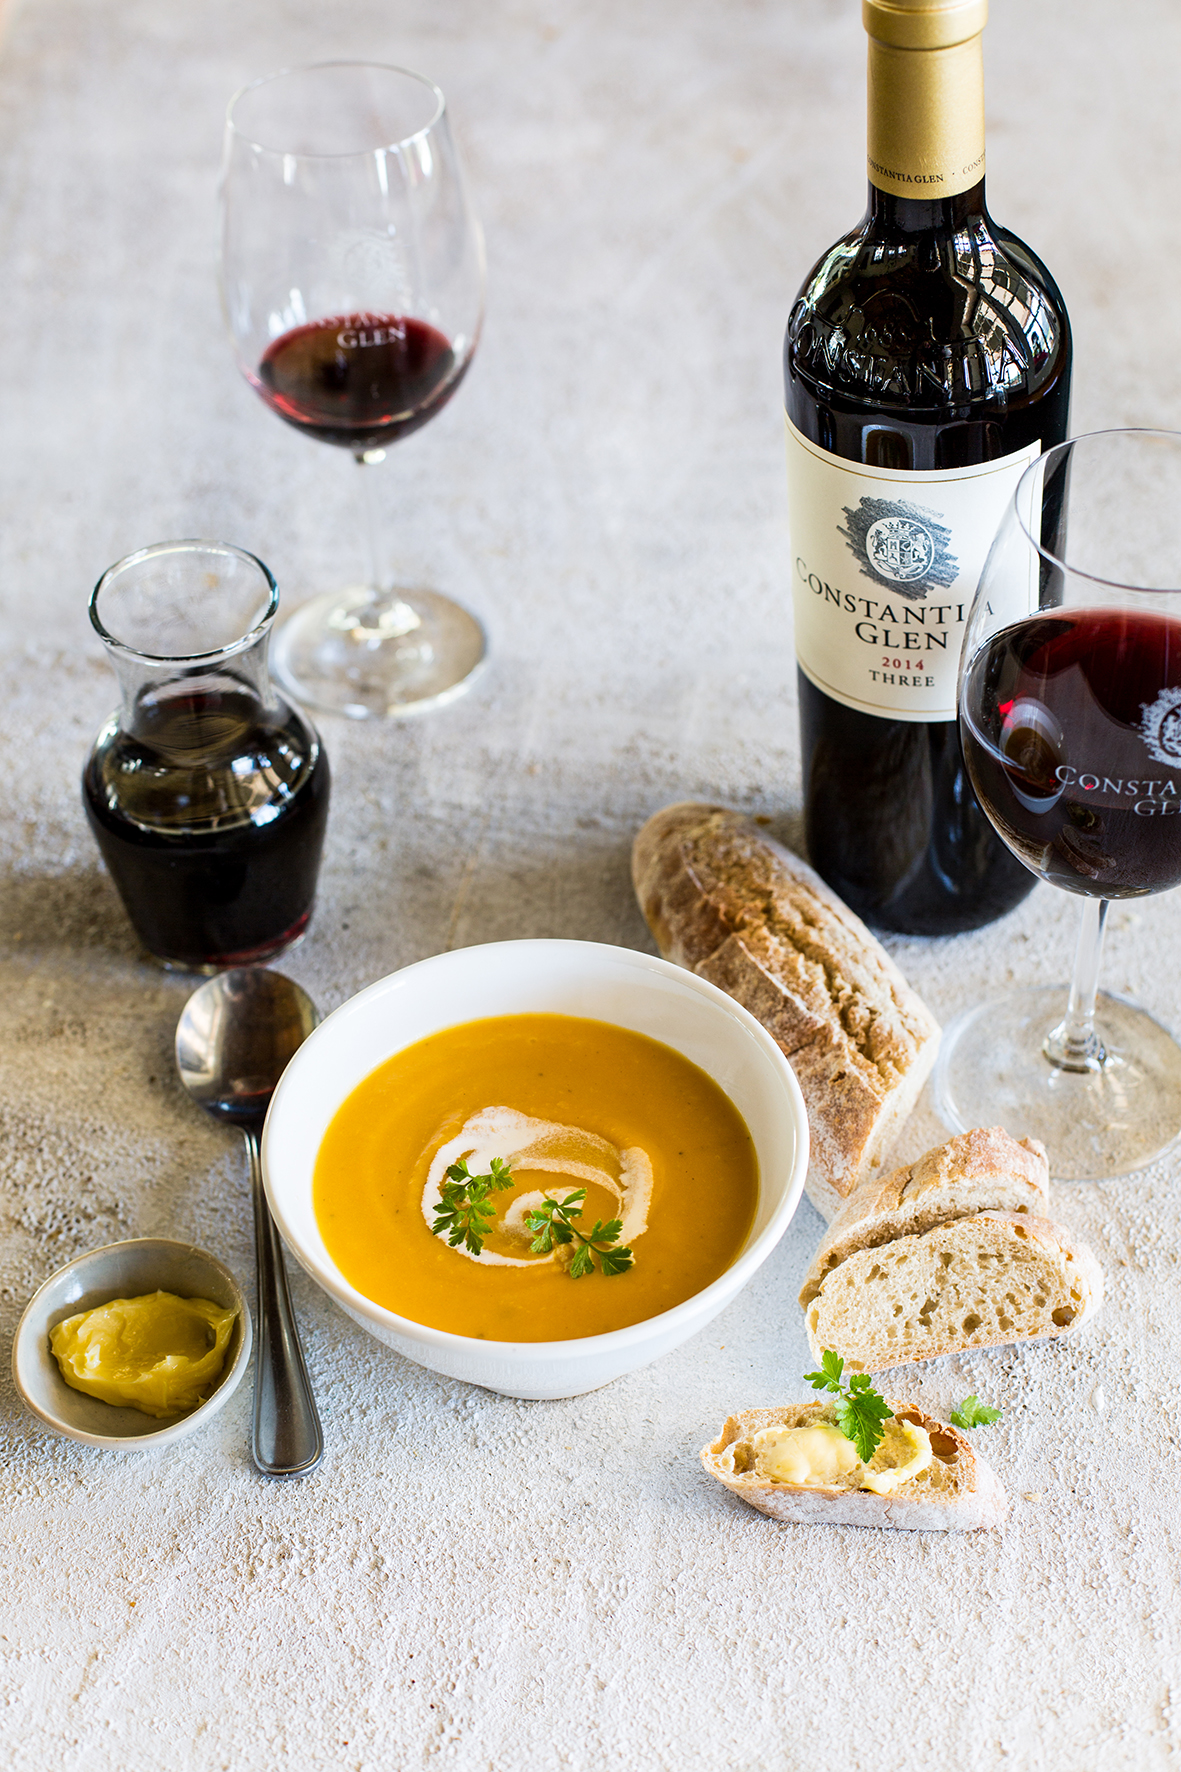 Soup And Wine Pairing At Constantia Glen photo